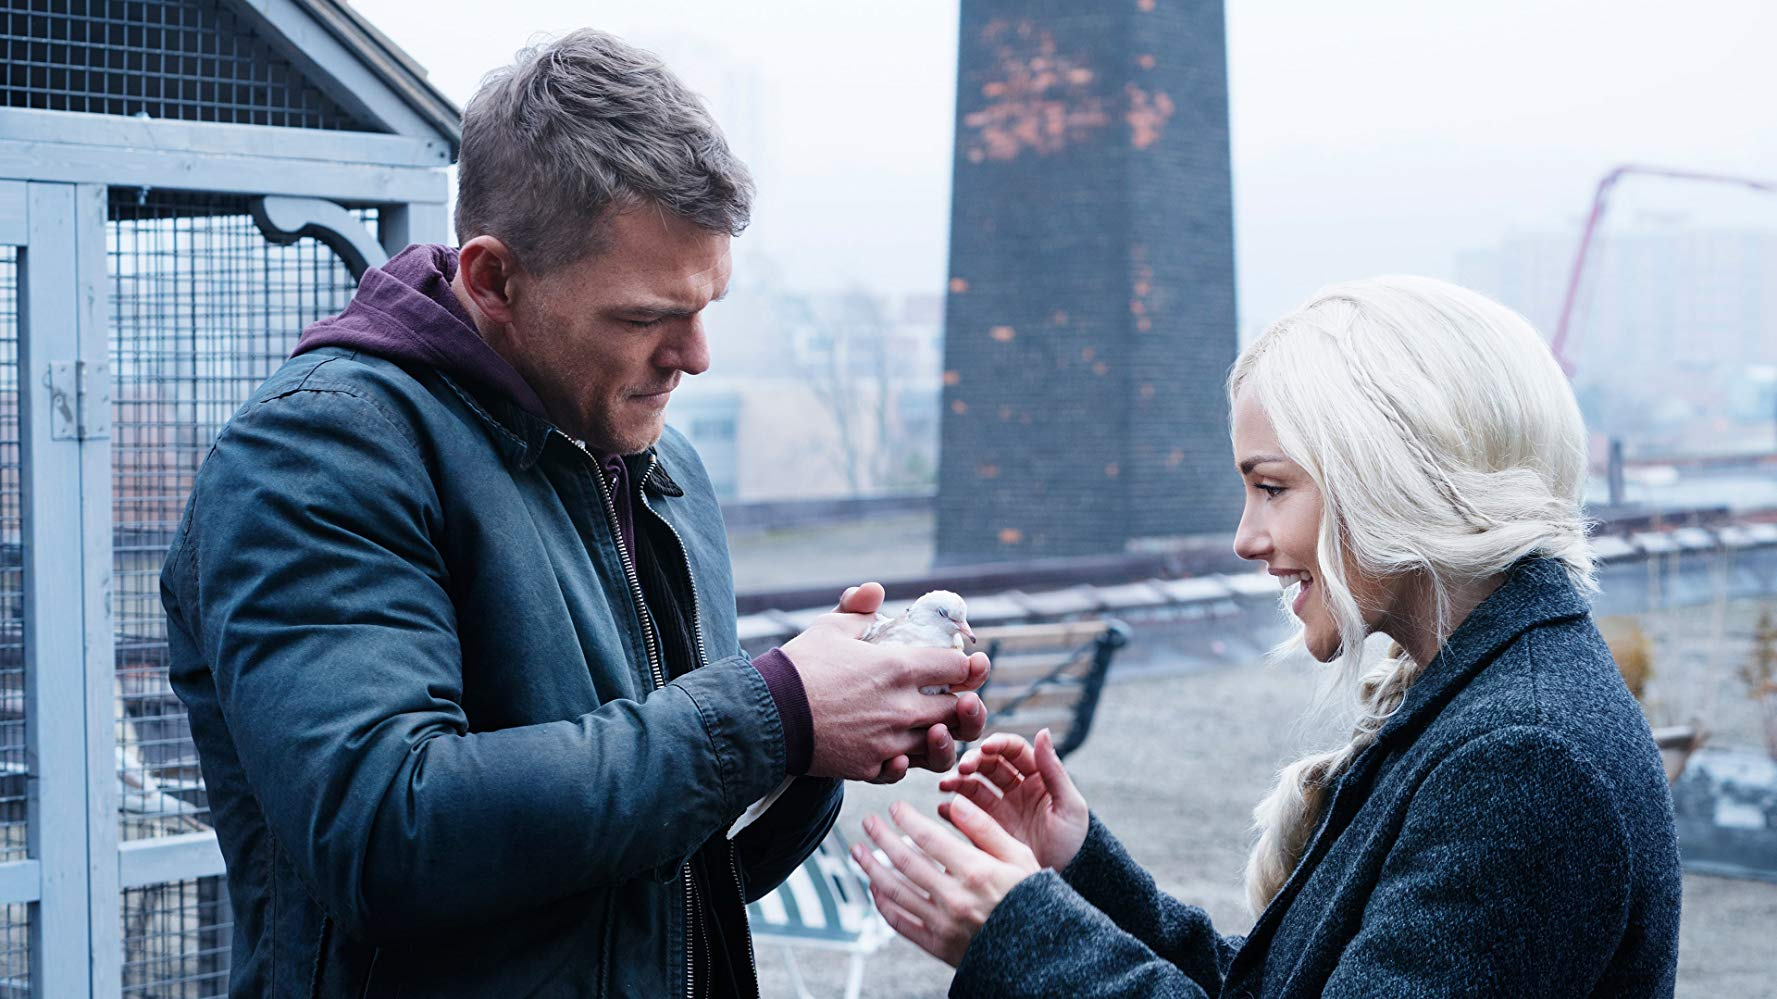 Titans (TV Series) Episode: Hawk and Dove